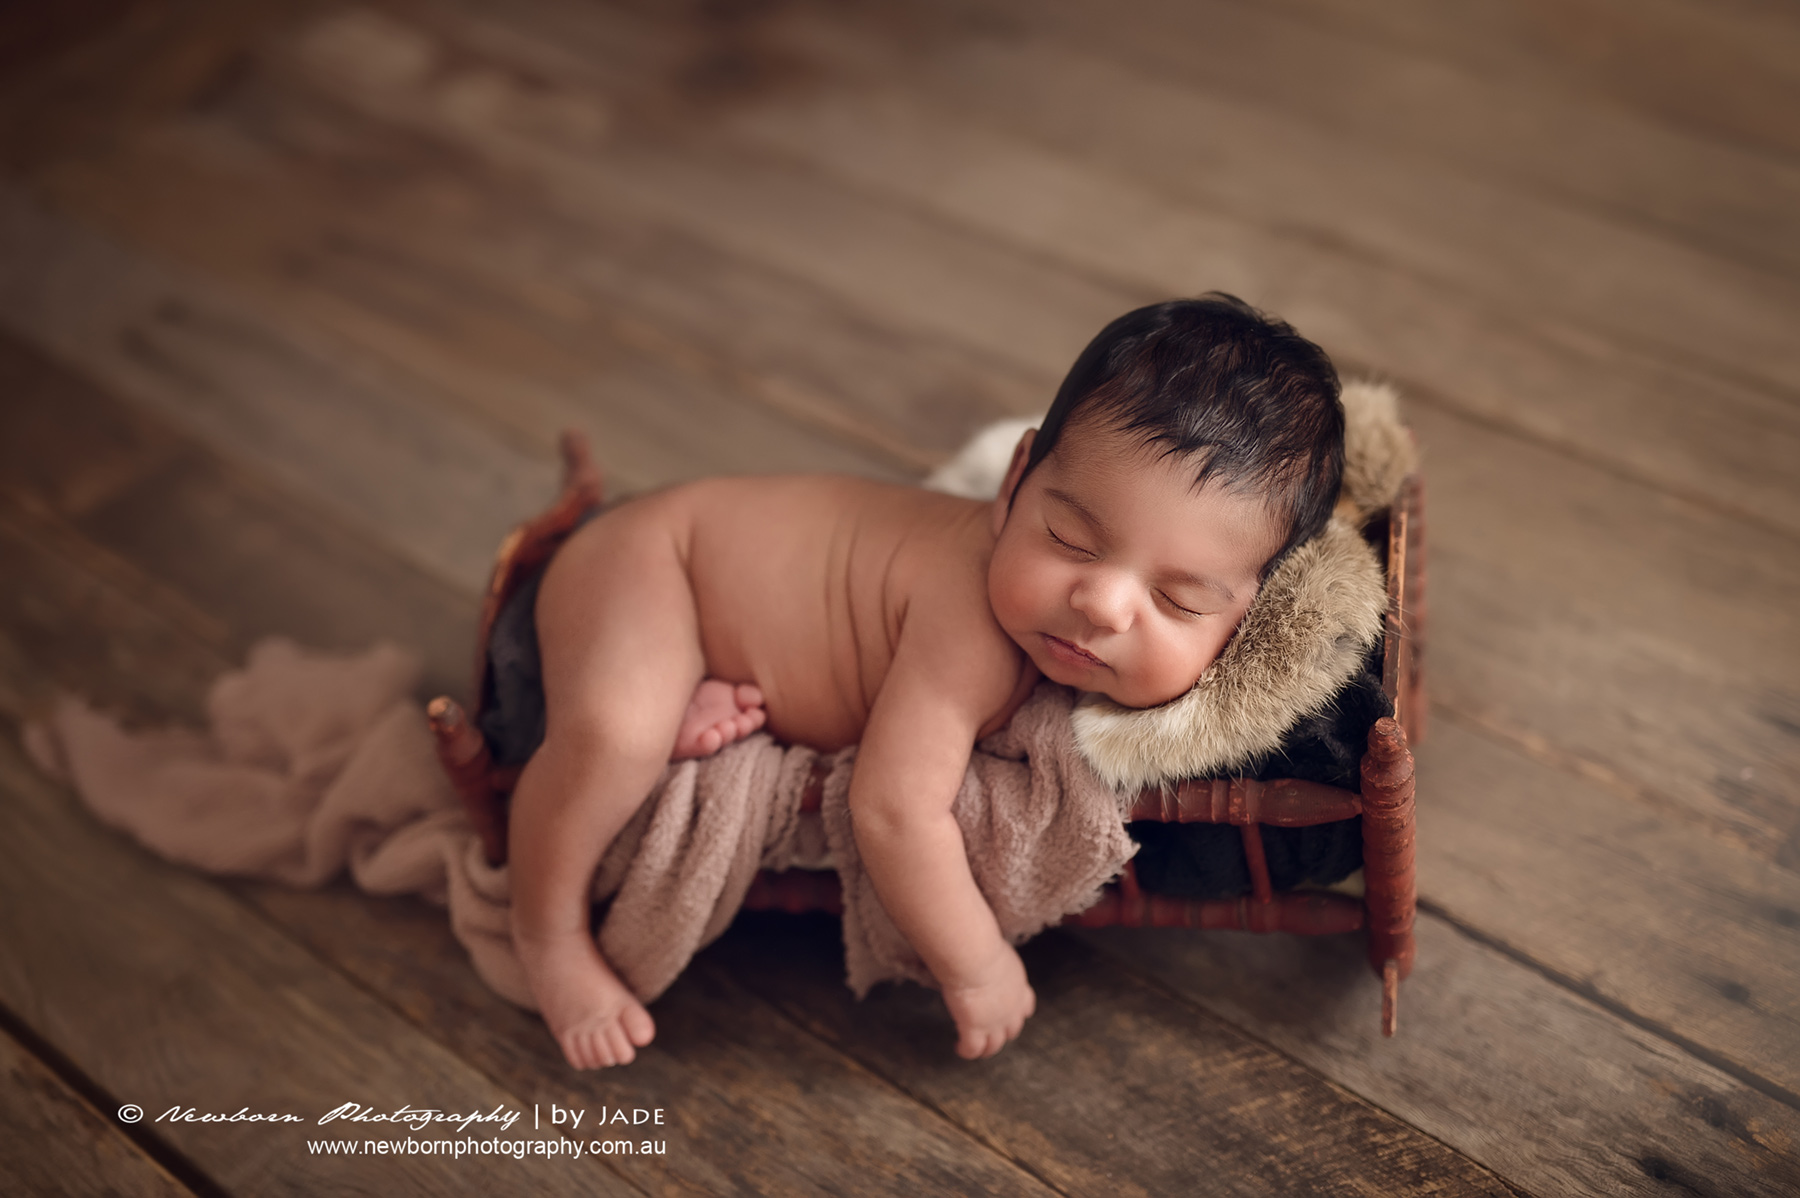 Jade Gao Newborn Photography